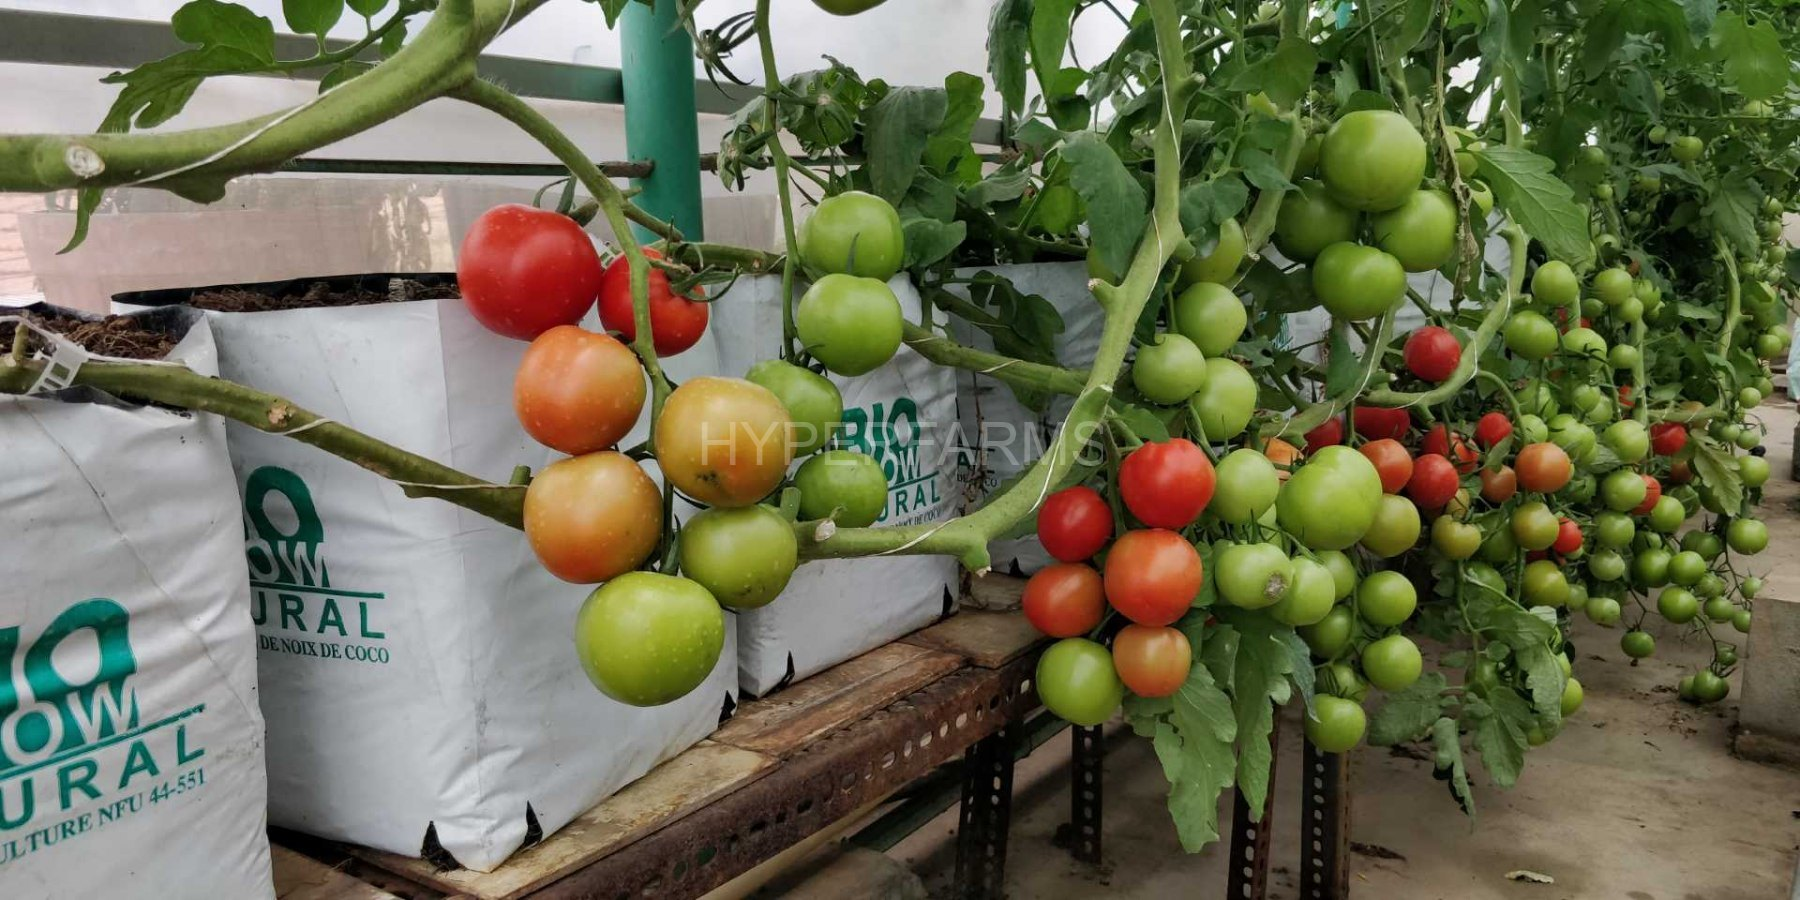 cocktail-tomato-hydroponics-hyperfarms-in-india7-Large